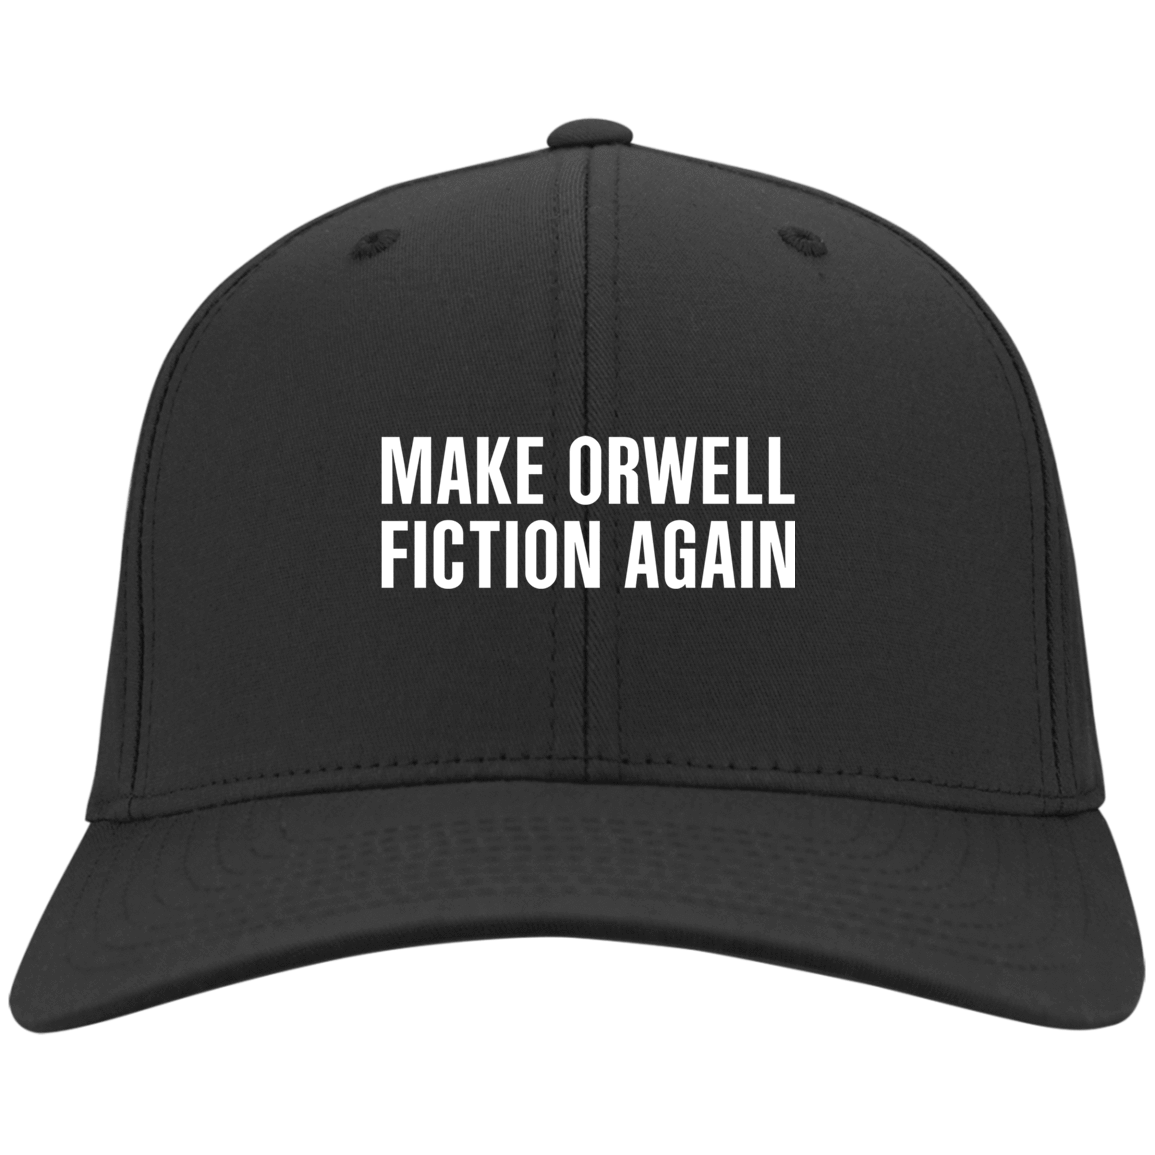 Make Orwell Fiction Again Hat 10-54-74169573-84 - Tee Ript